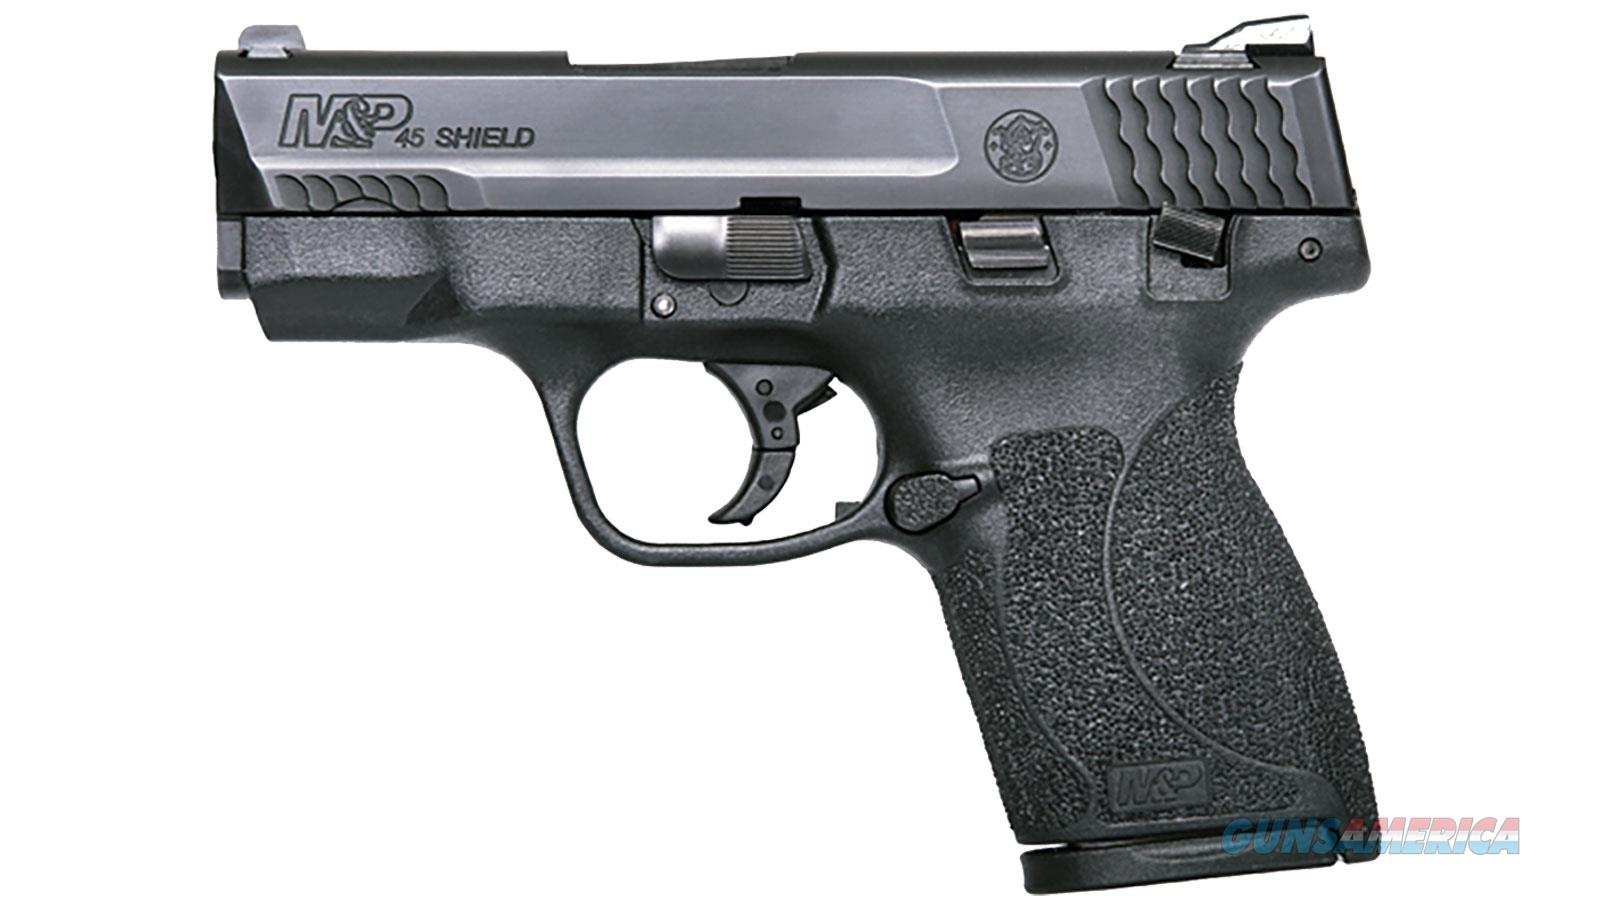 Smith & Wesson M&P Shield 45Acp 3.3 No Thumb Safety 7Rd 6Rd 11531  Guns > Pistols > S Misc Pistols